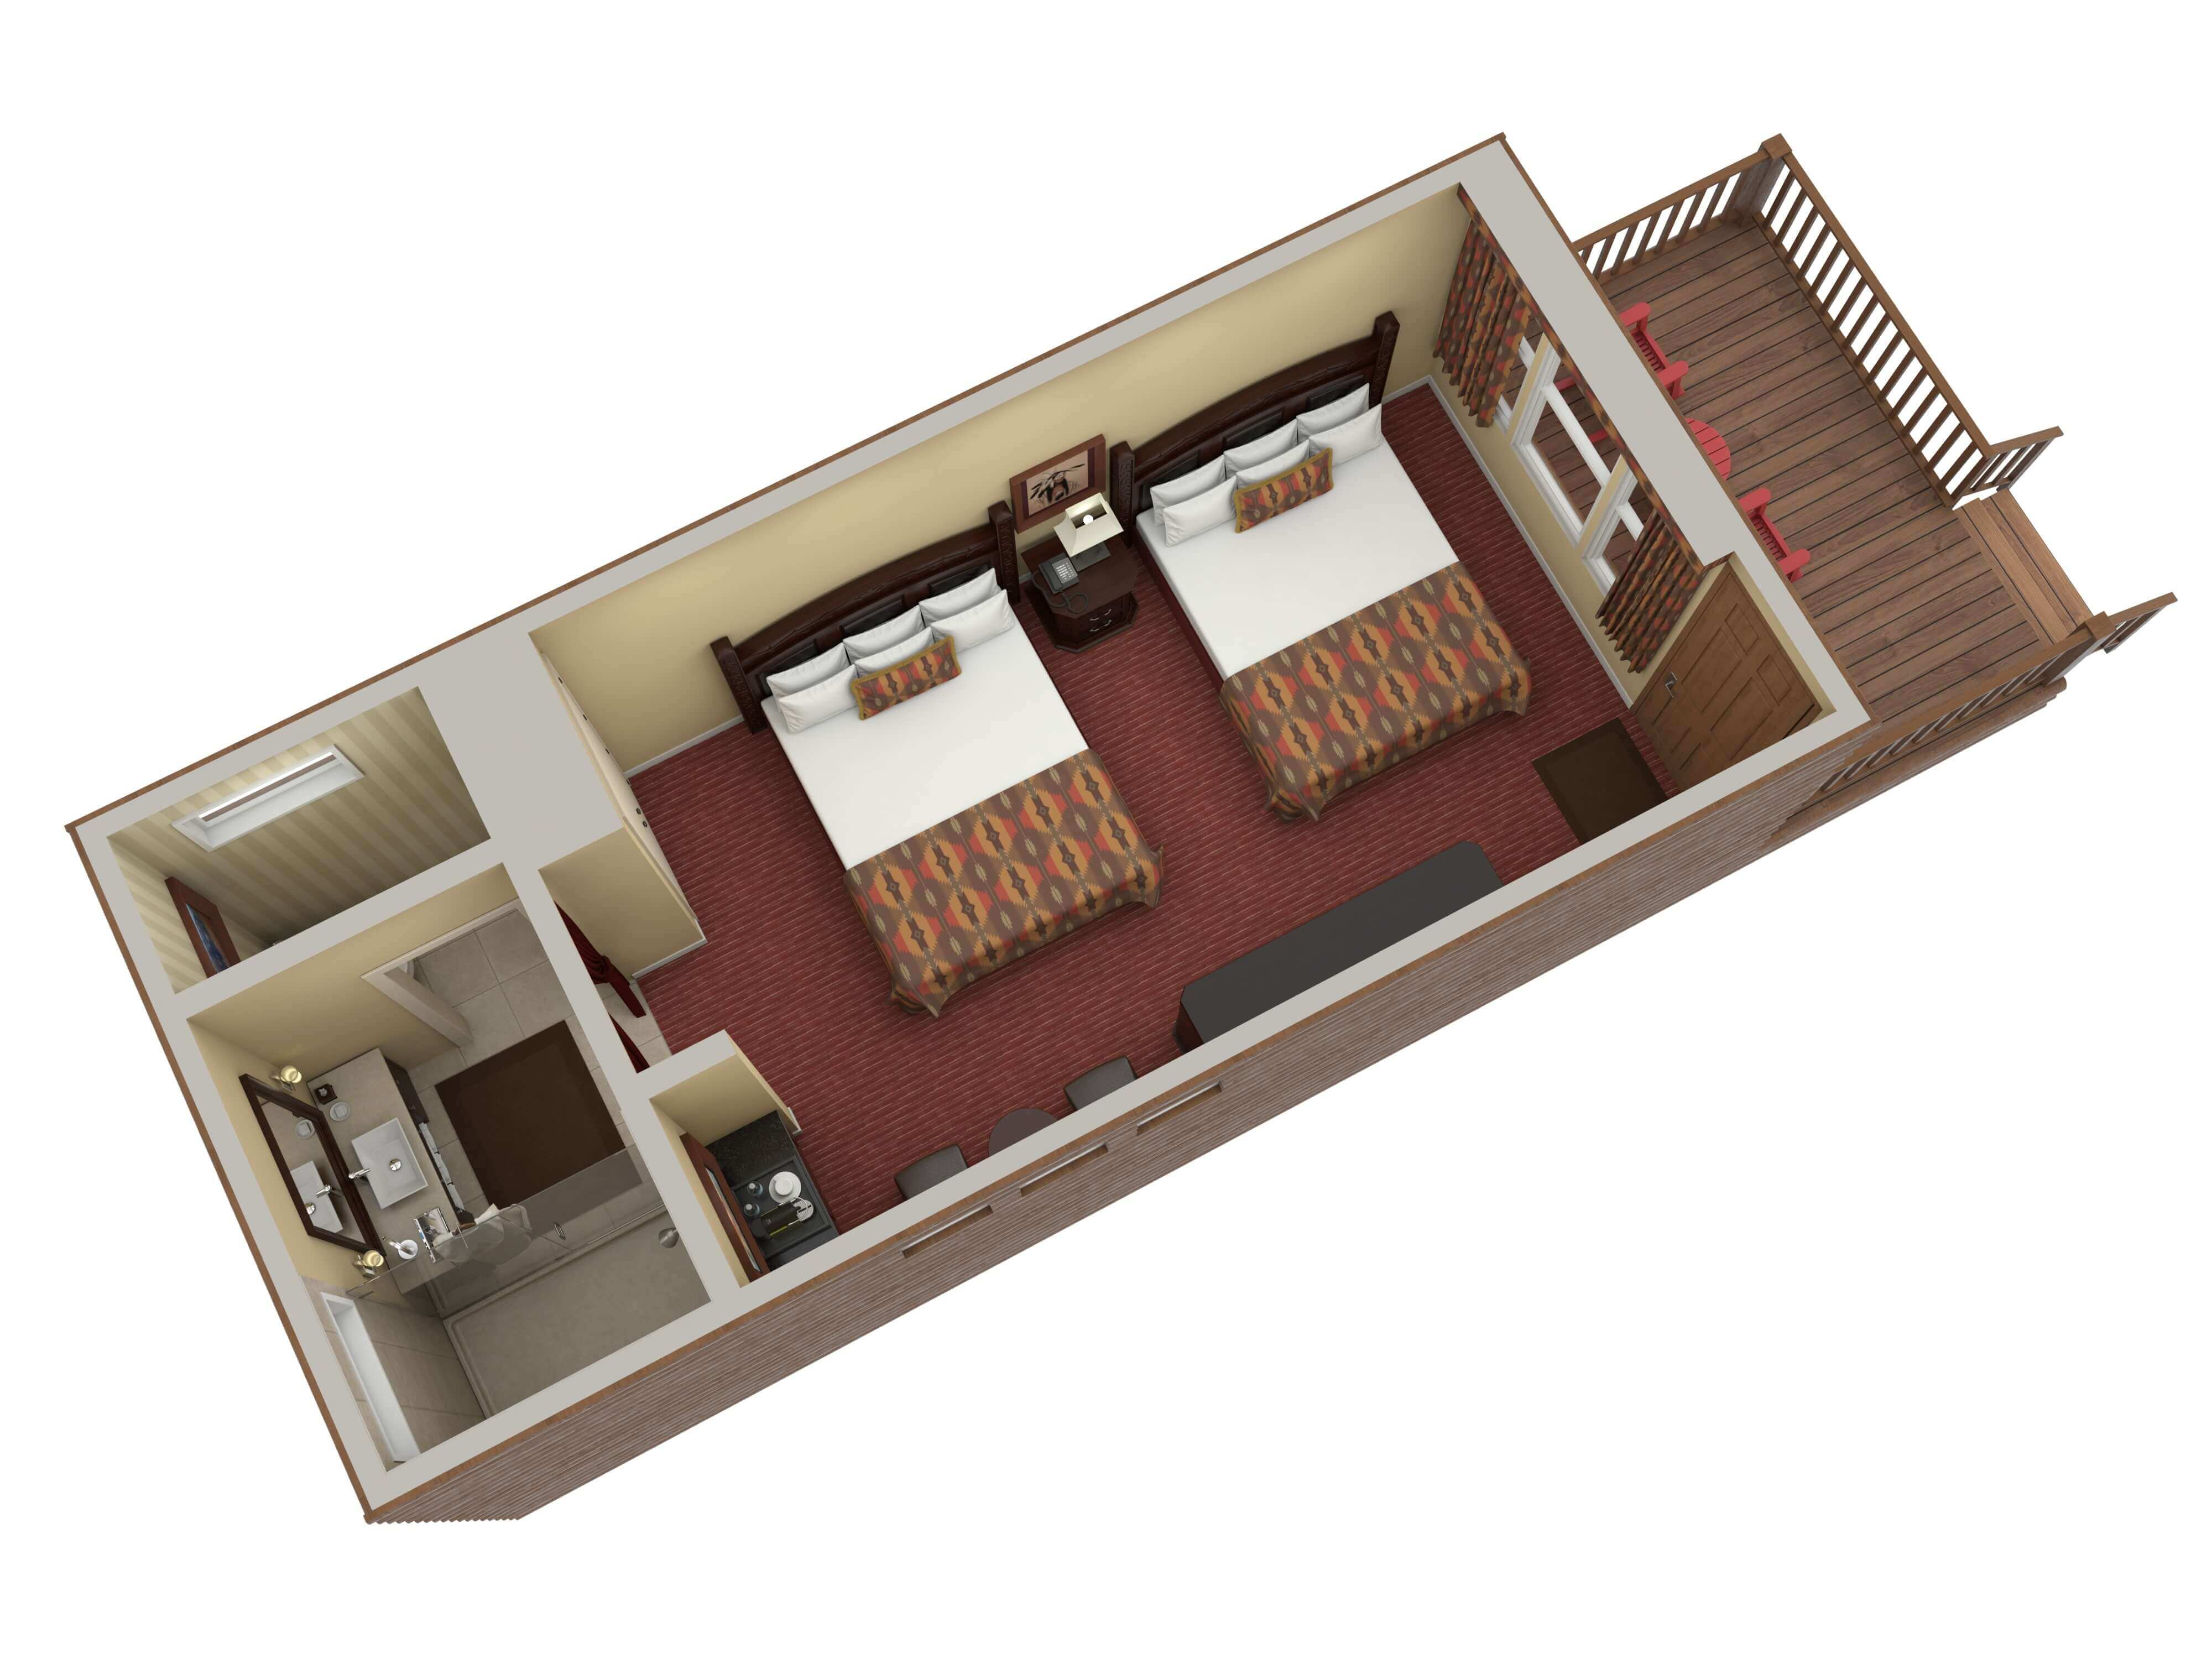 digital image of top down view of luxury cabin with two queen beds